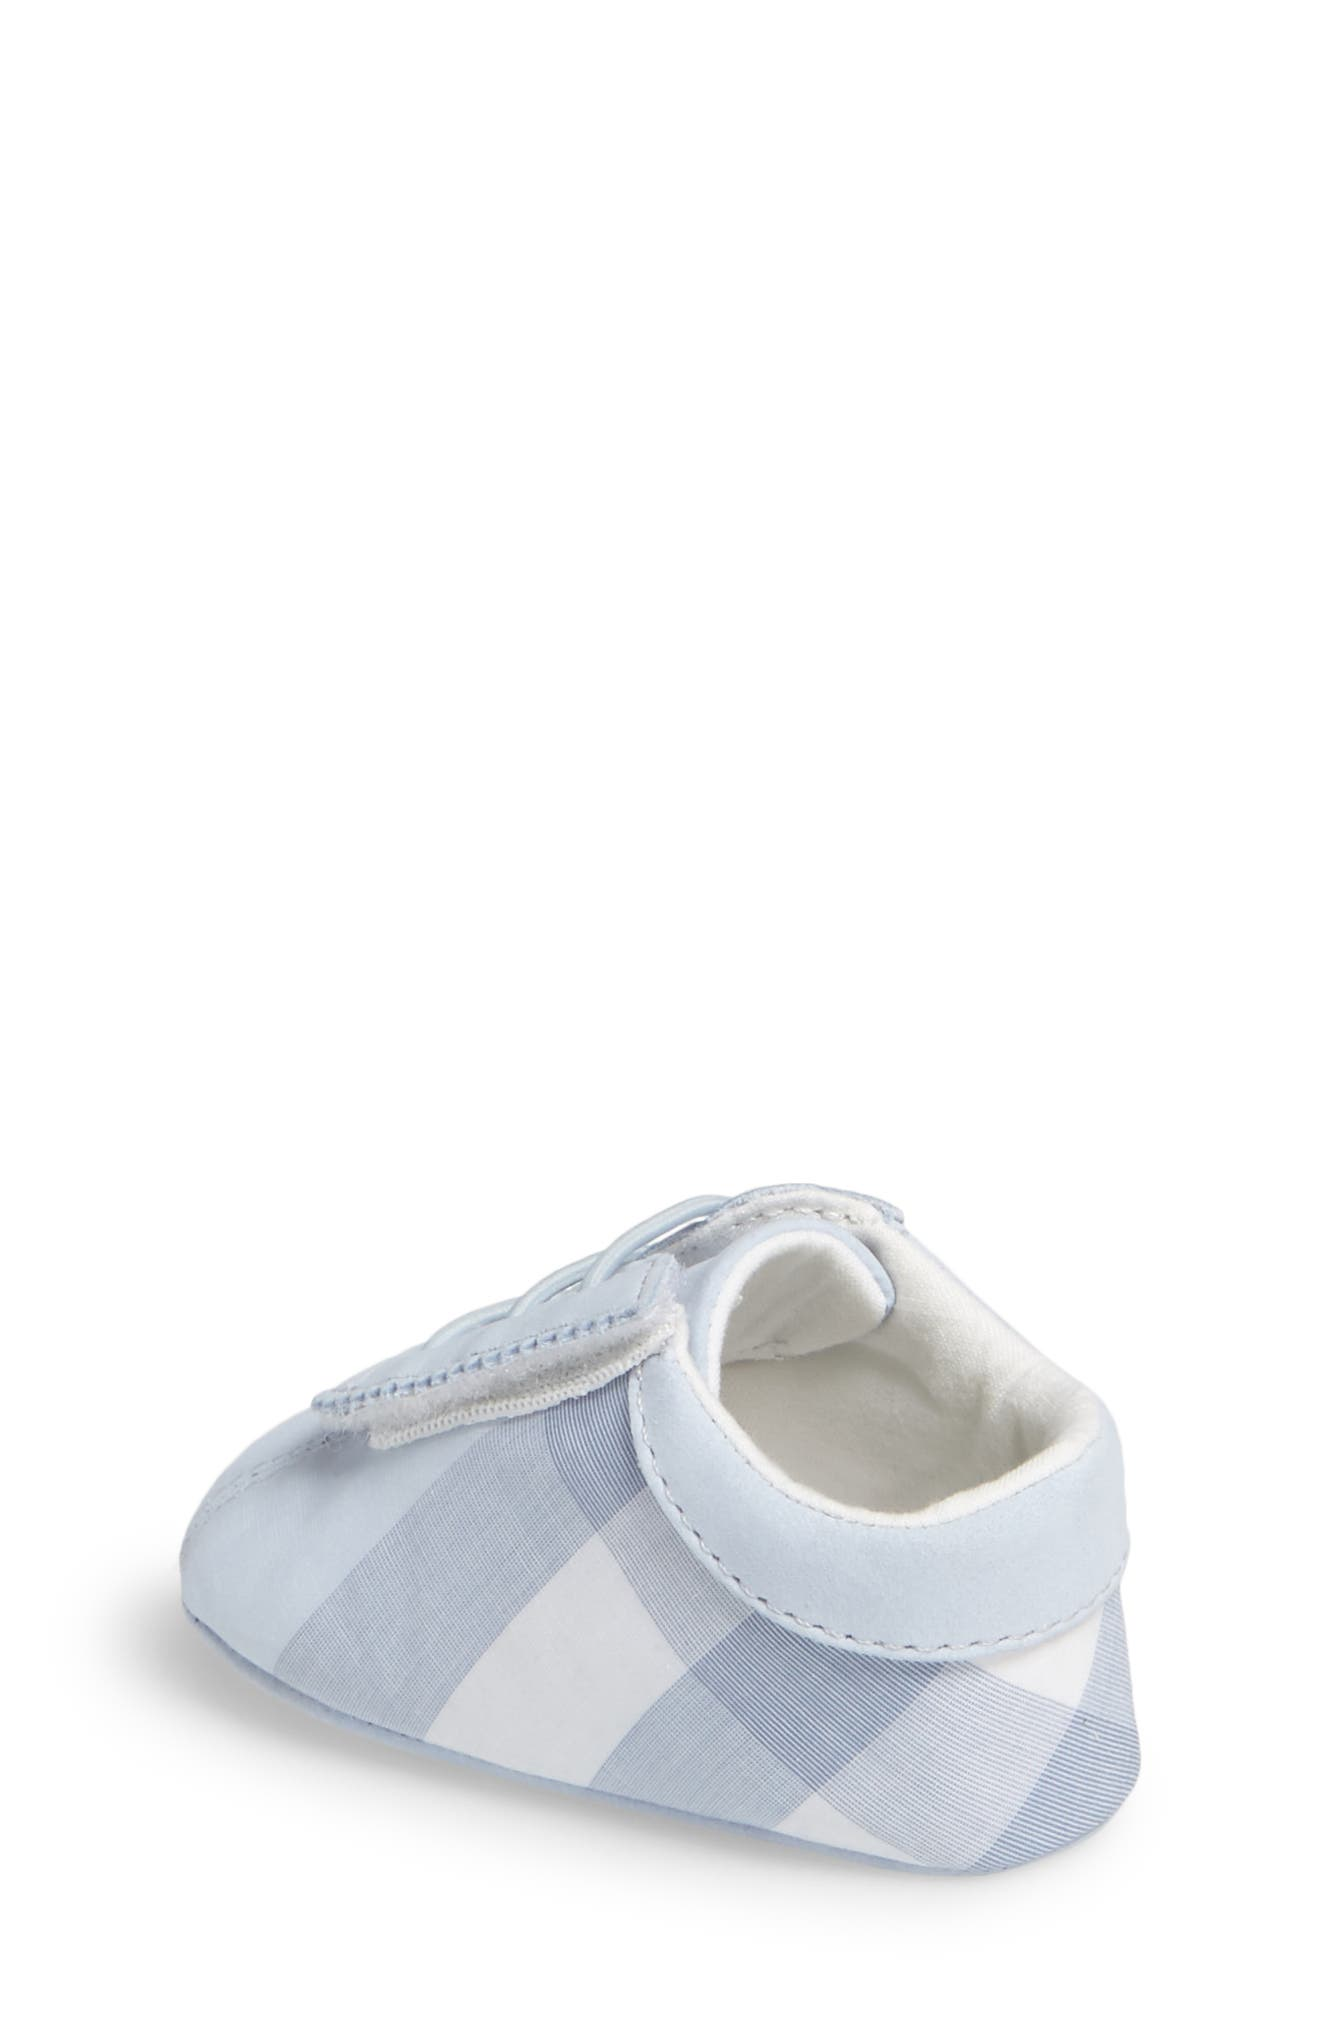 'Bosco' Crib Shoe,                             Alternate thumbnail 2, color,                             Ice Blue